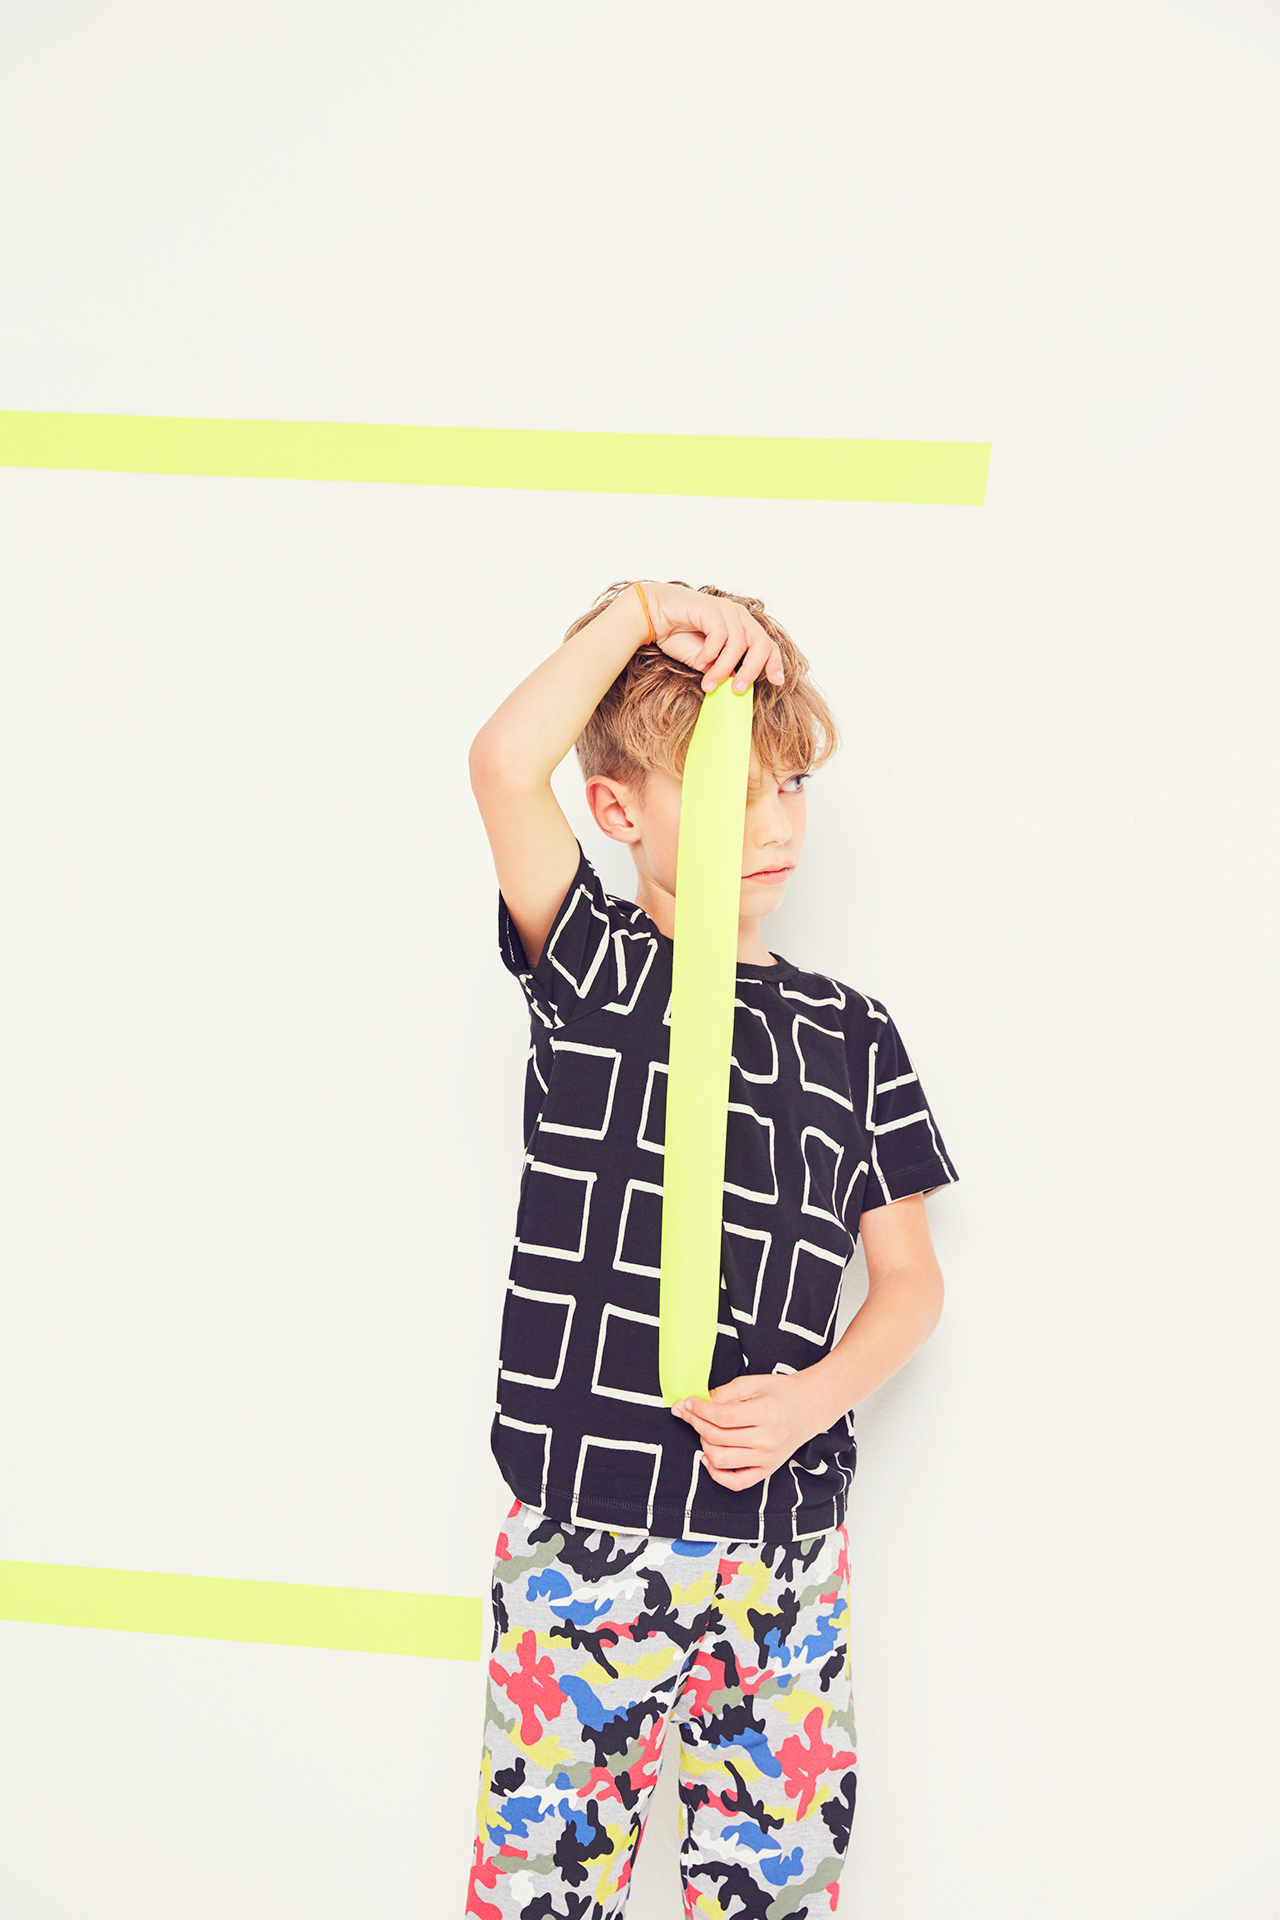 Smallish_kids fashion_FineLine_editorial_1